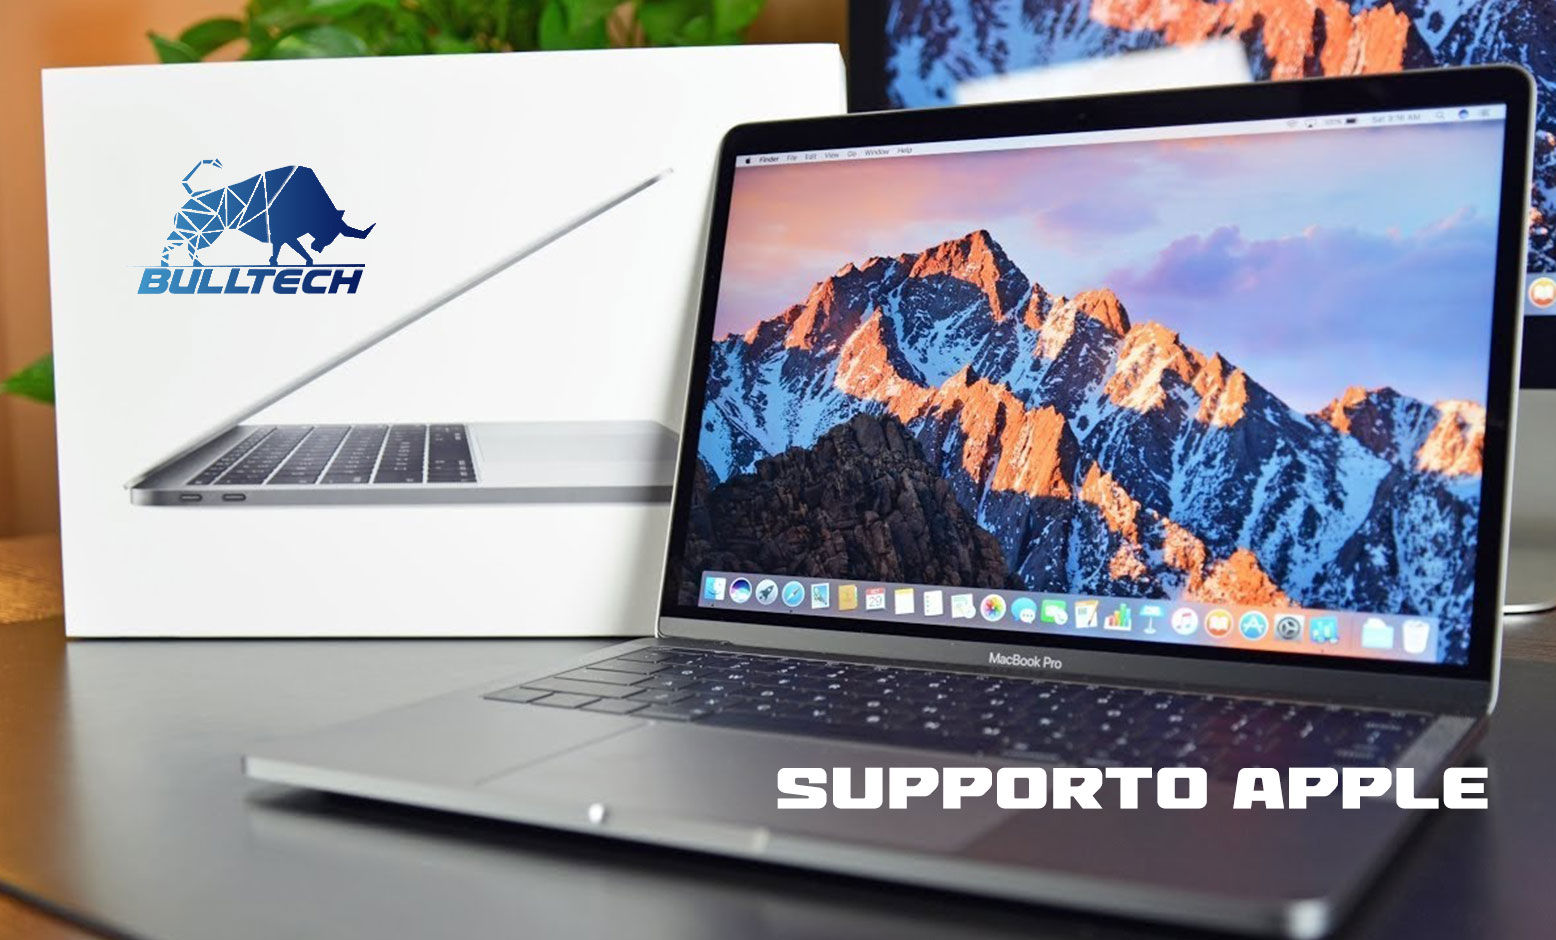 Supporto Apple